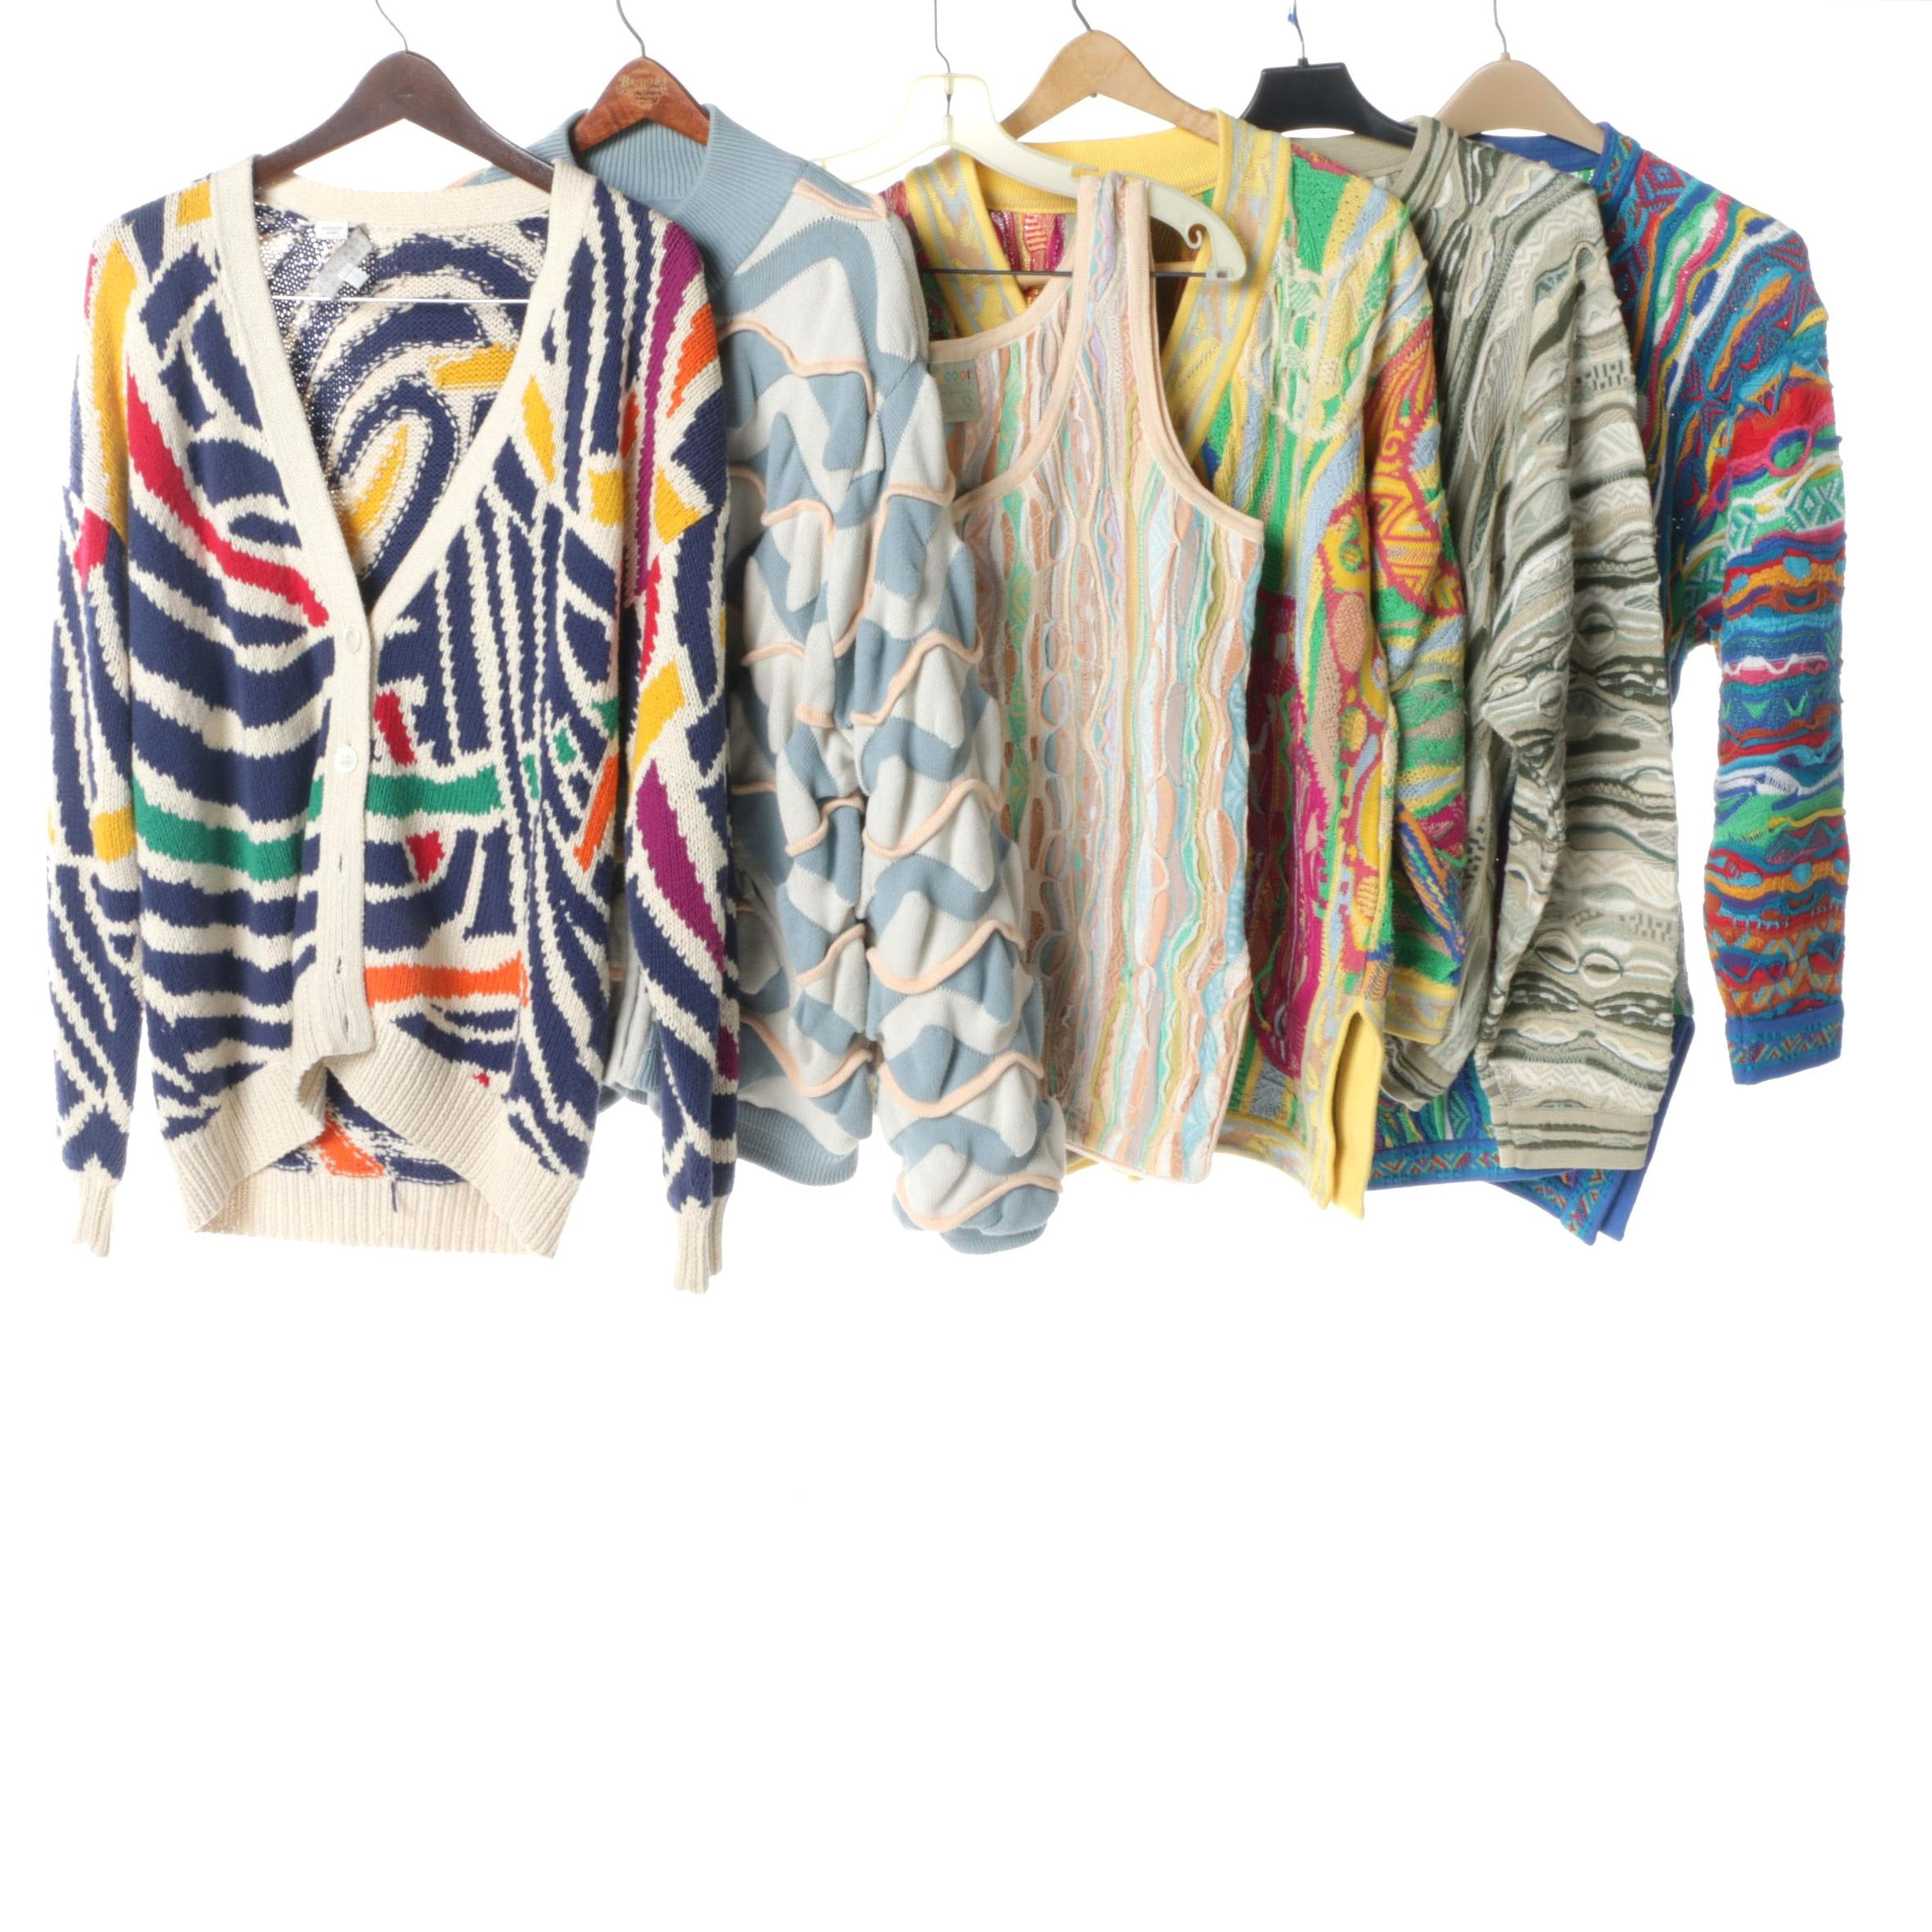 Women's Vintage Coogi Sweaters and Cardigans